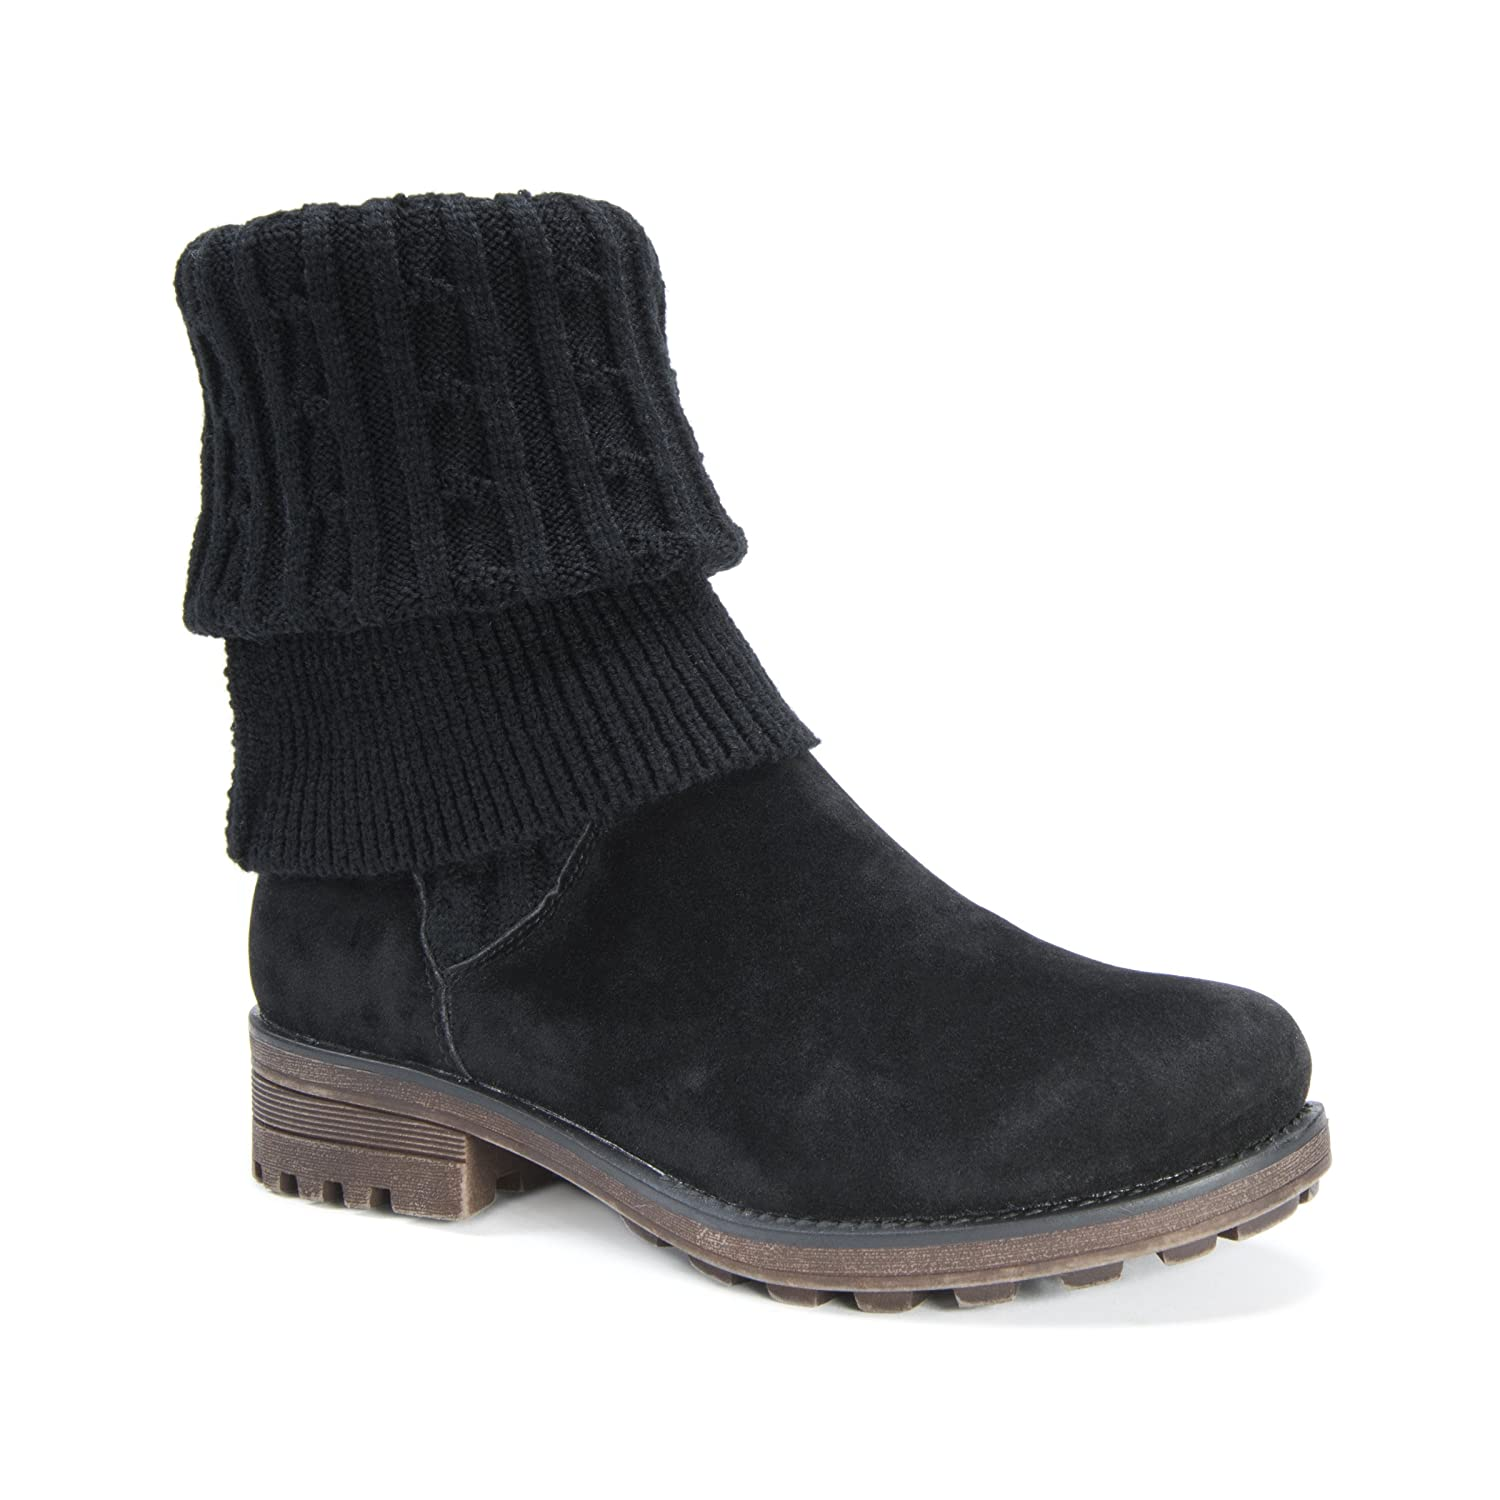 MUK LUKS Women's Kelby Fashion Boot B01LML1PE0 9 B(M) US|Black